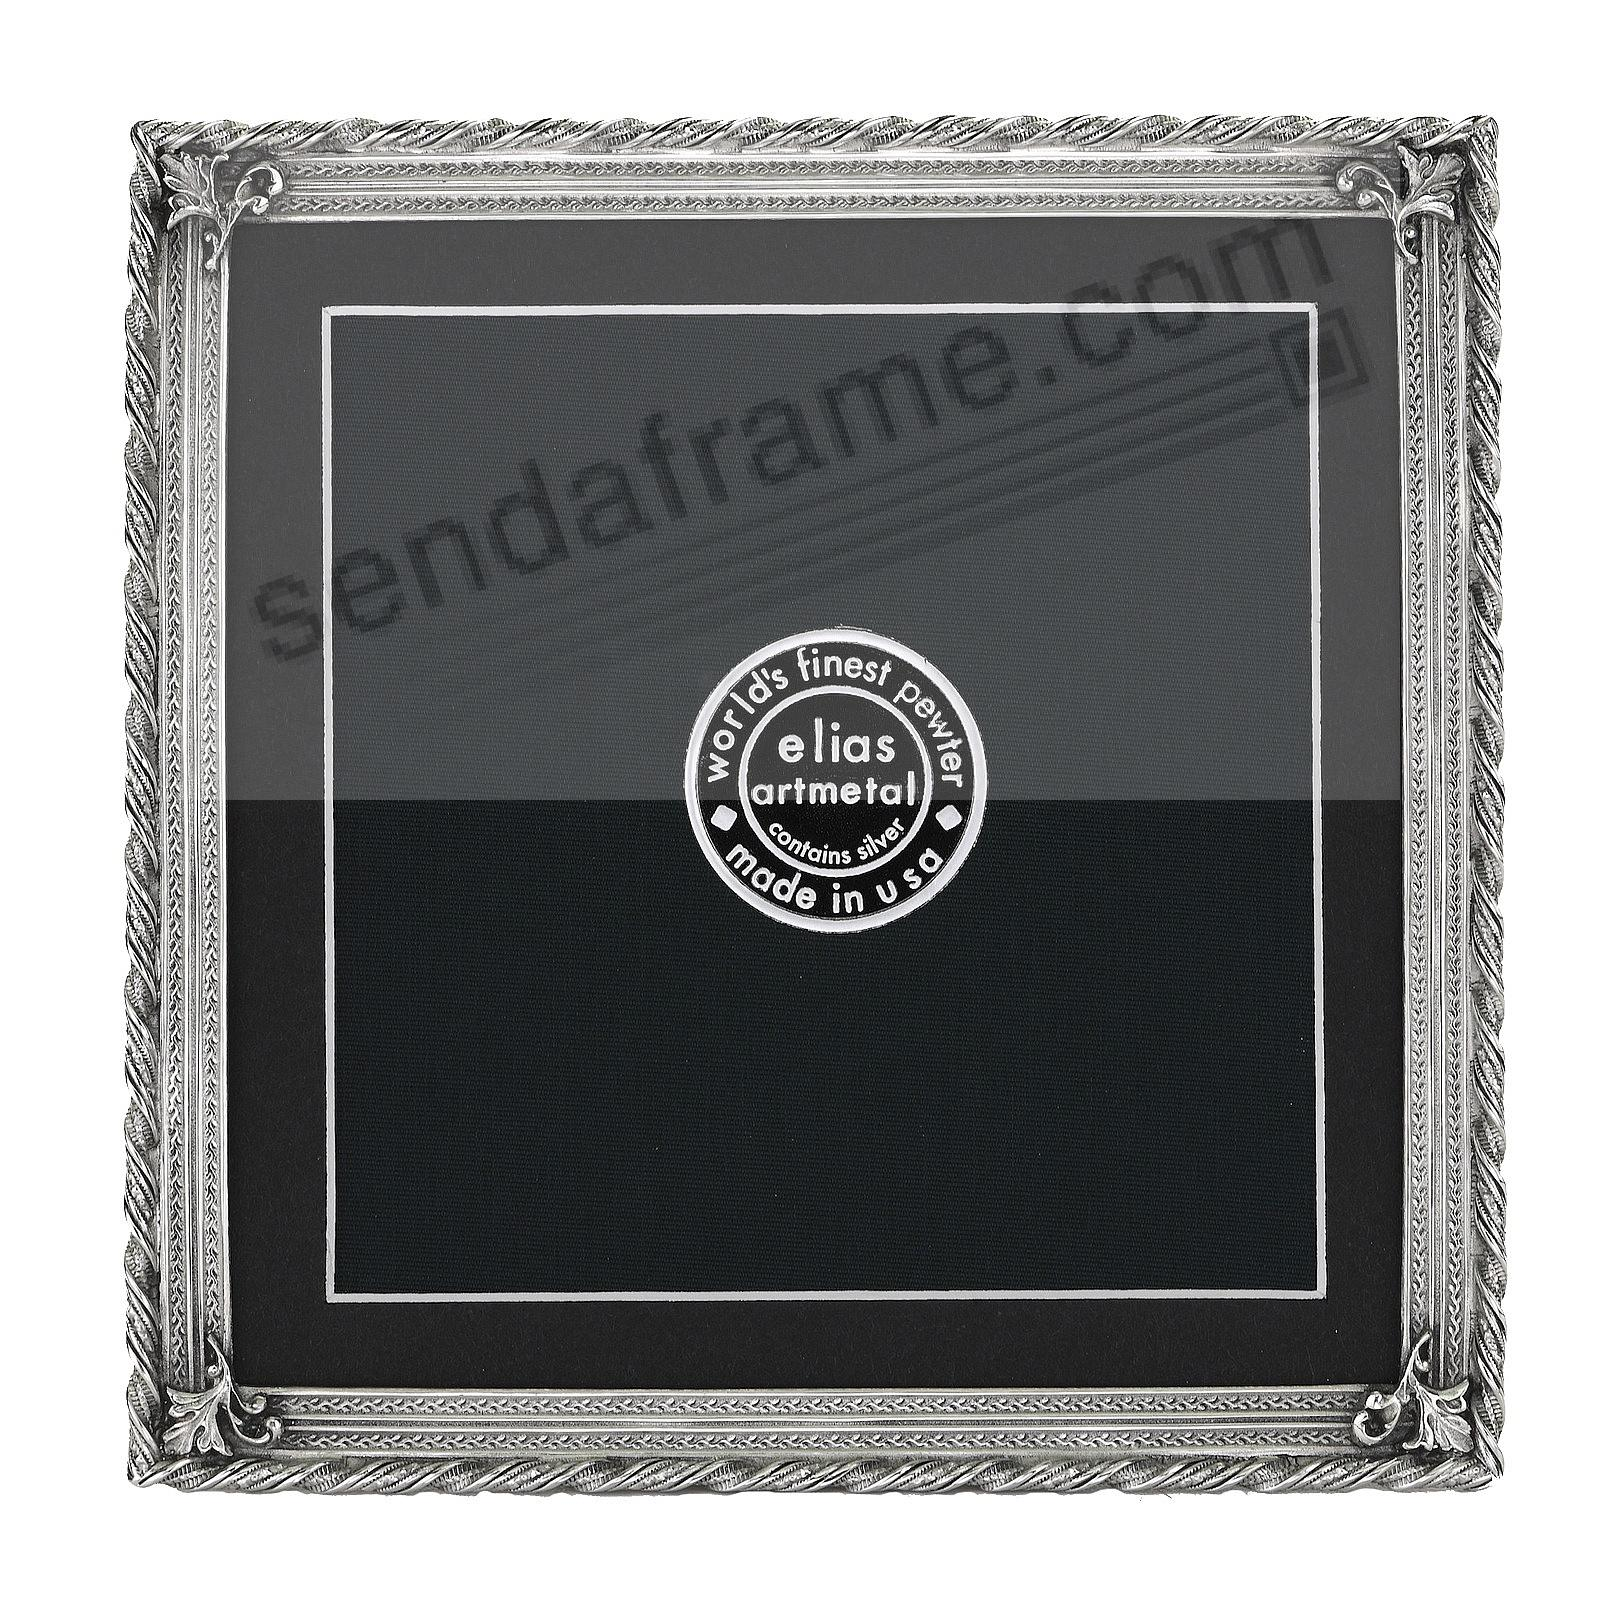 EMPIRE Fine Pewter original 5x5/4x4 by Elias Artmetal®